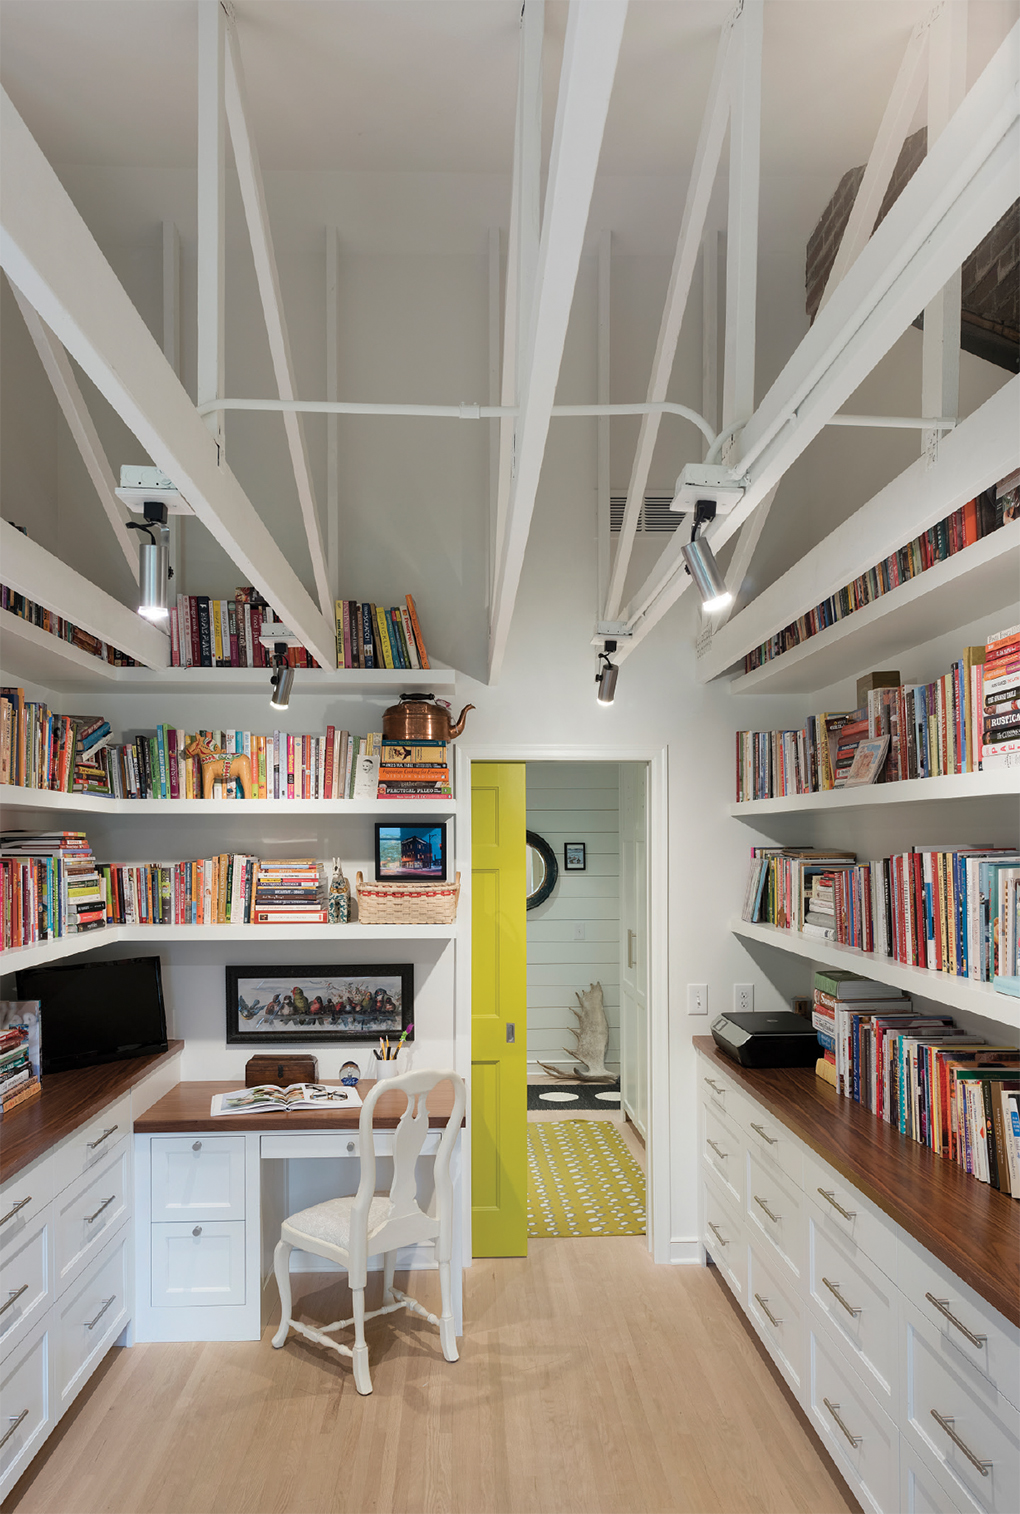 Exposed rafters and brick tower above the book-lined walls of the new office space. The charteuse-painted pocket door opens to a laundry/mudroom.